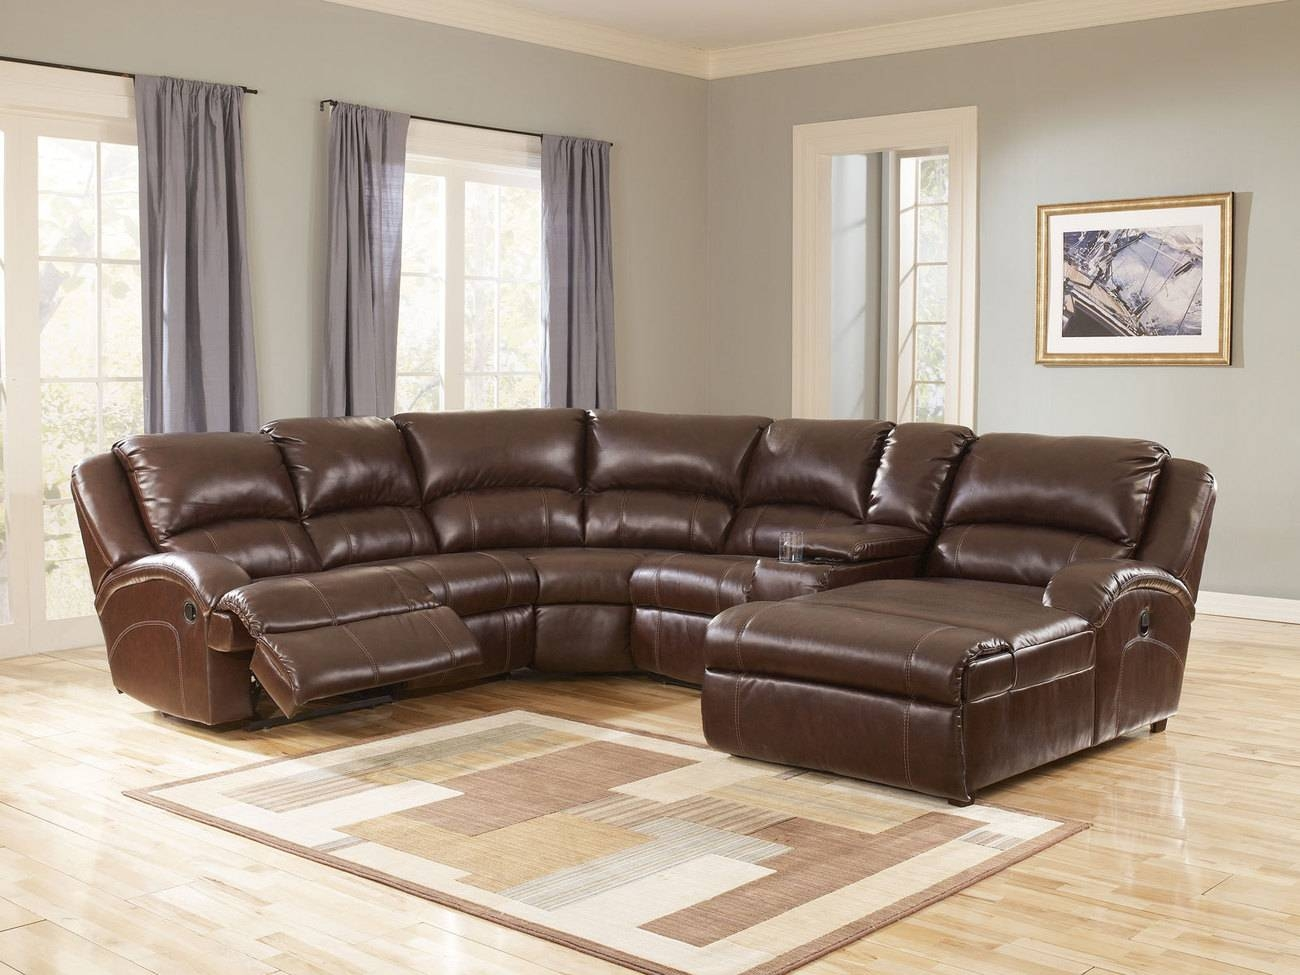 Leather Sofa With Chaise And Recliner | Tehranmix Decoration pertaining to Modern Reclining Leather Sofas (Image 13 of 30)